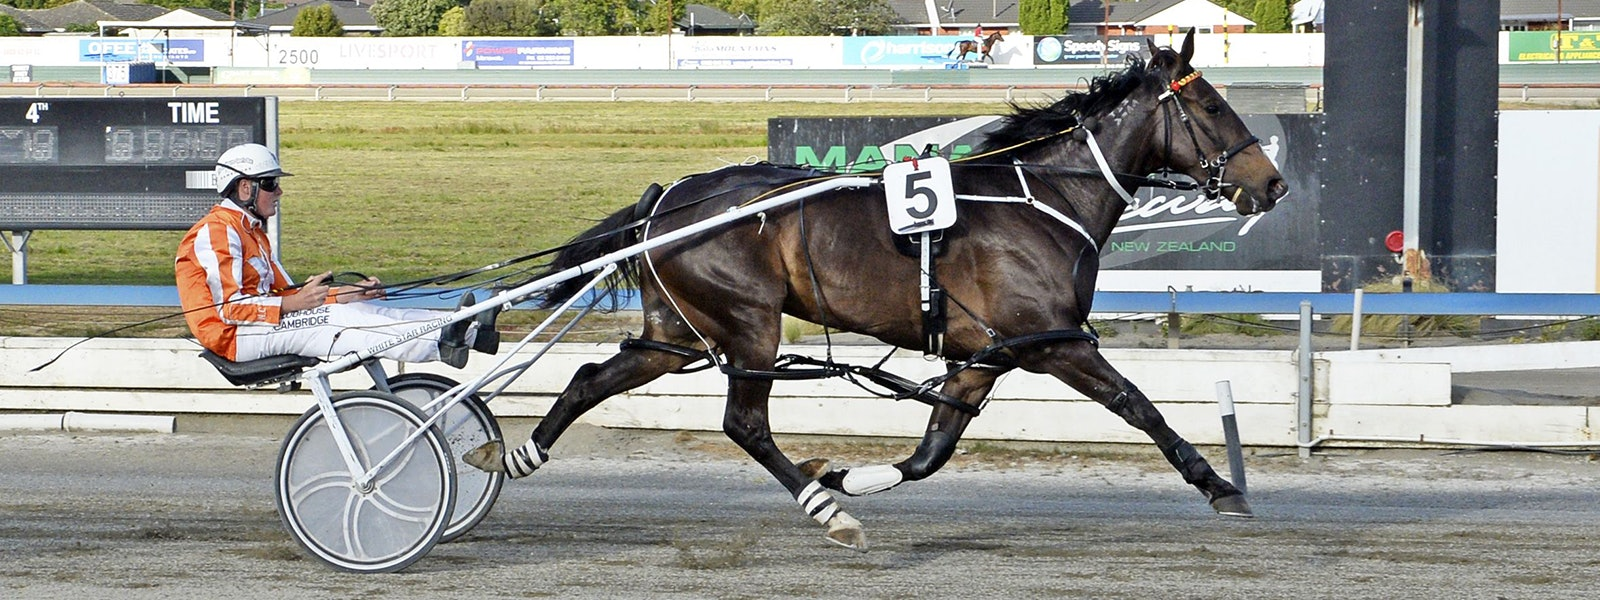 HRNZ | Harness Racing New Zealand